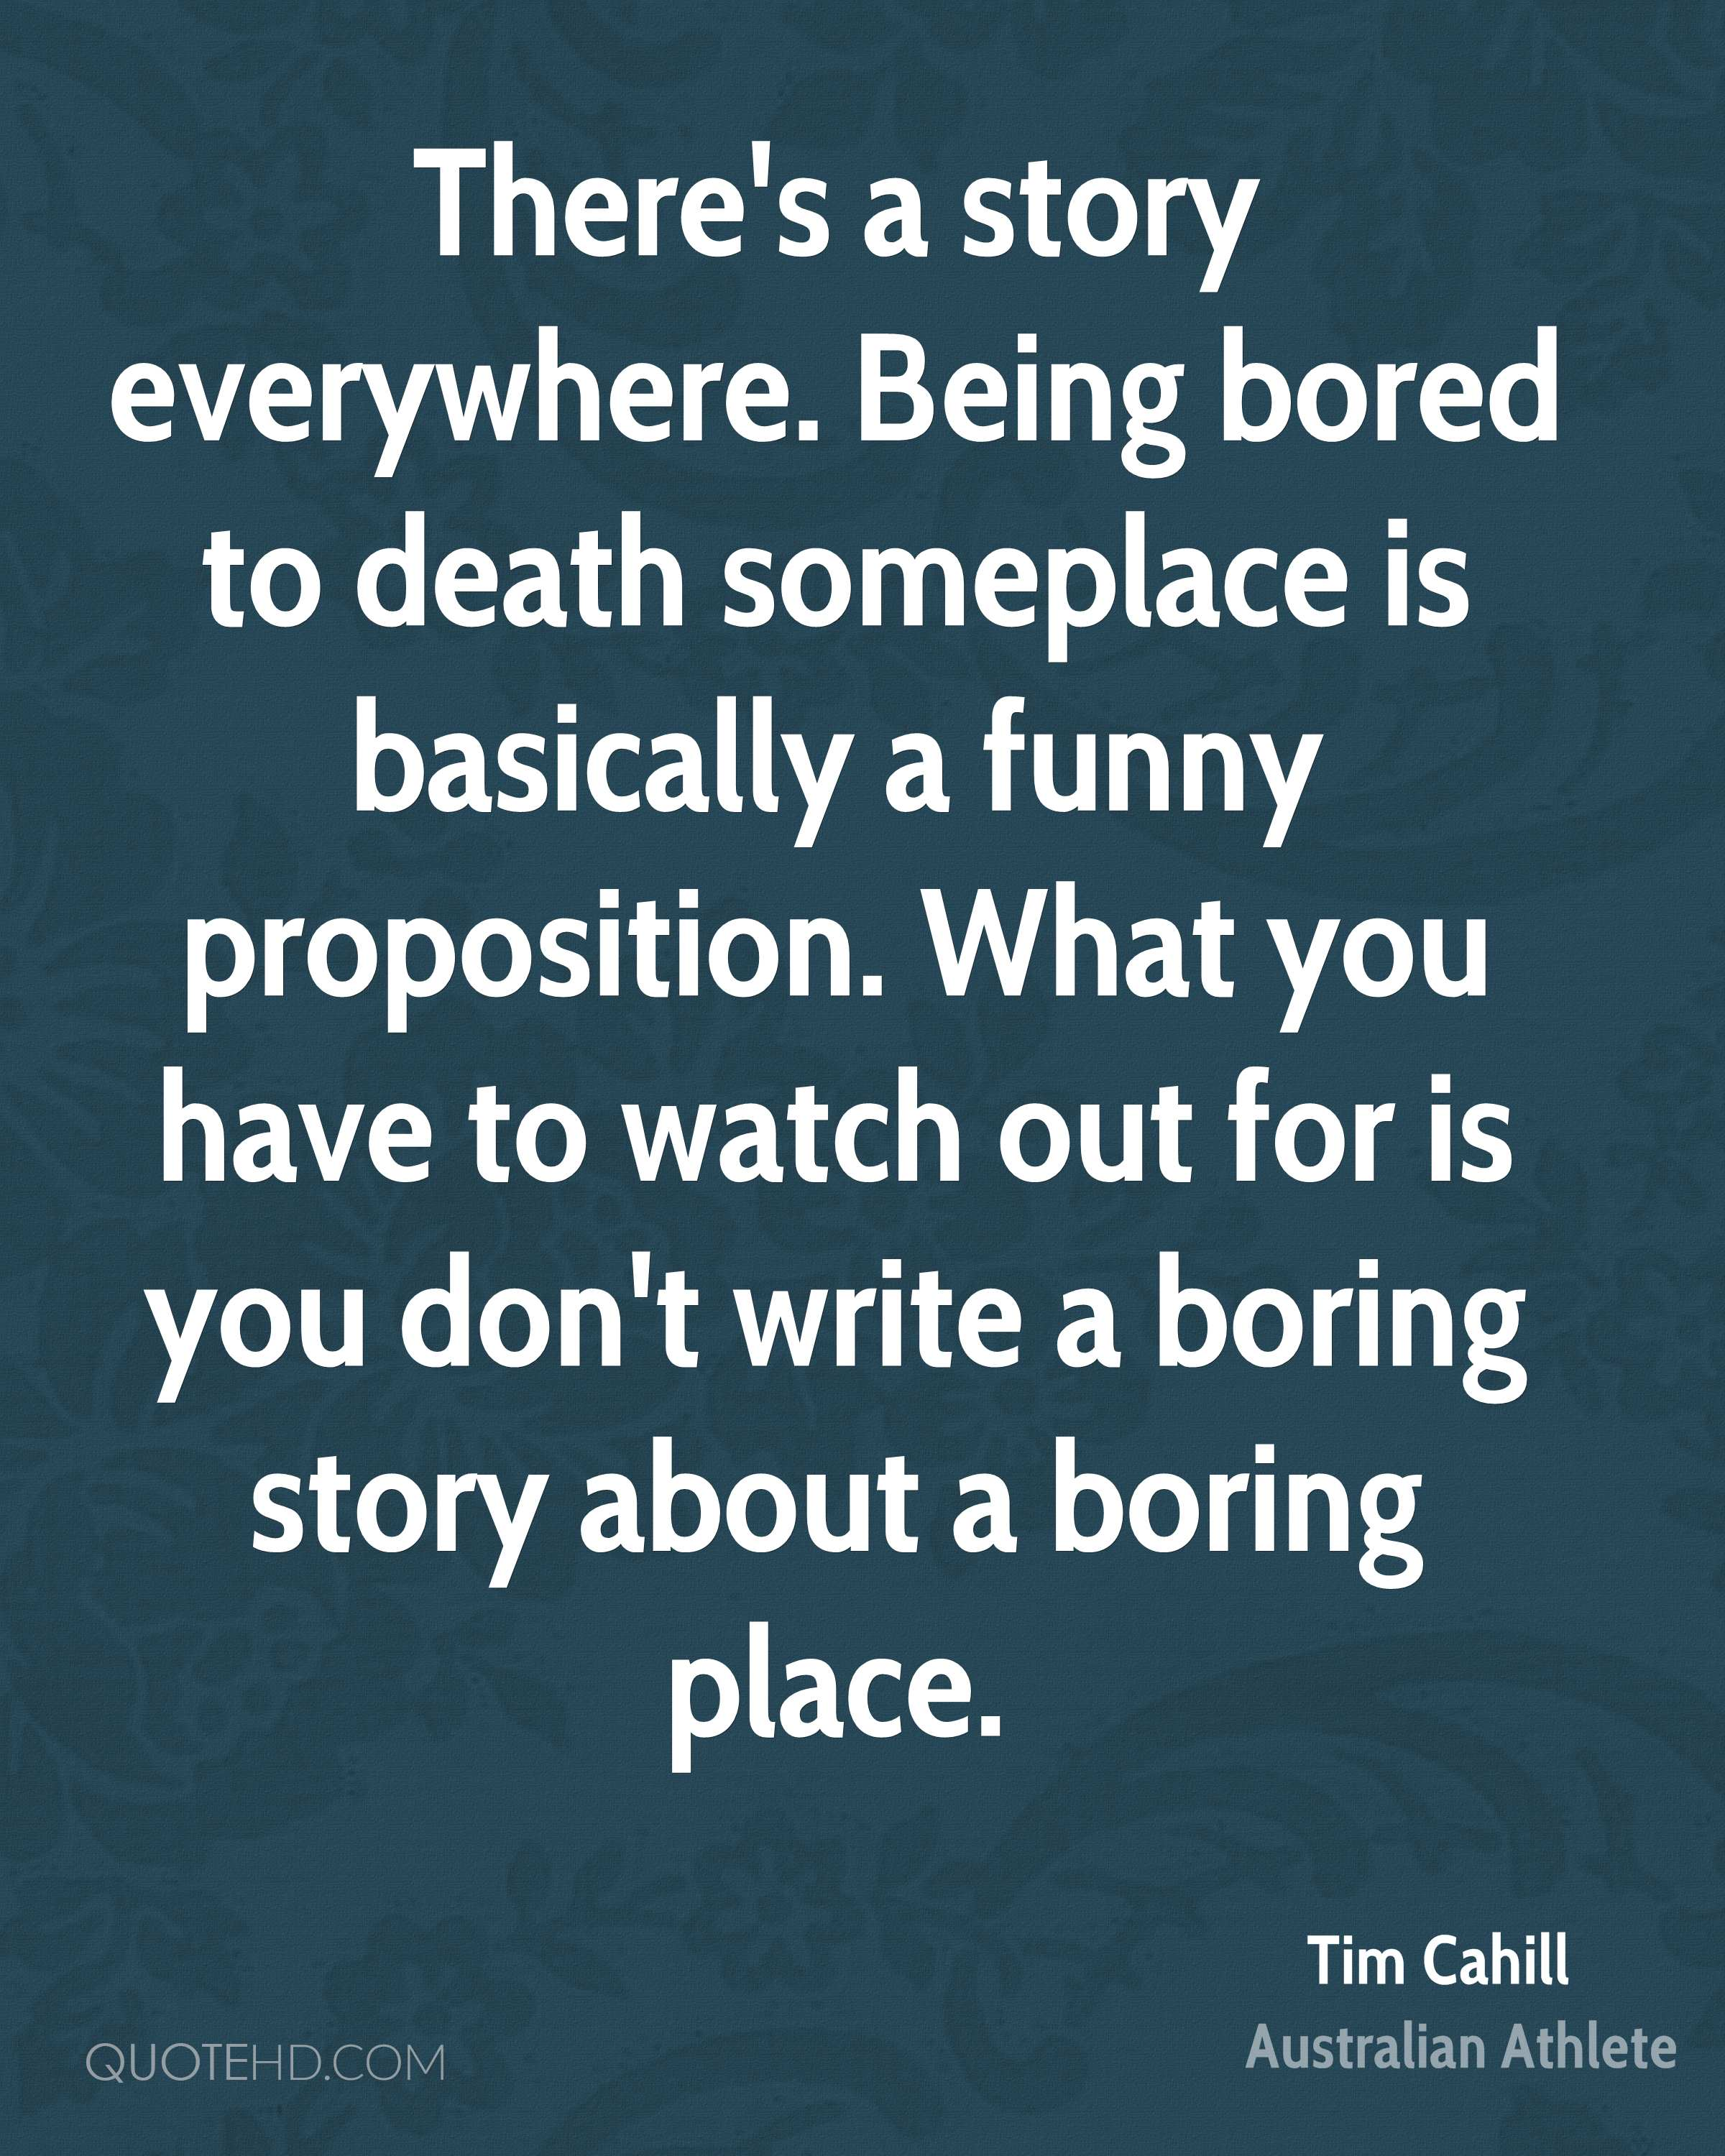 There's a story everywhere. Being bored to death someplace is basically a funny proposition. What you have to watch out for is you don't write a boring story about a boring place.